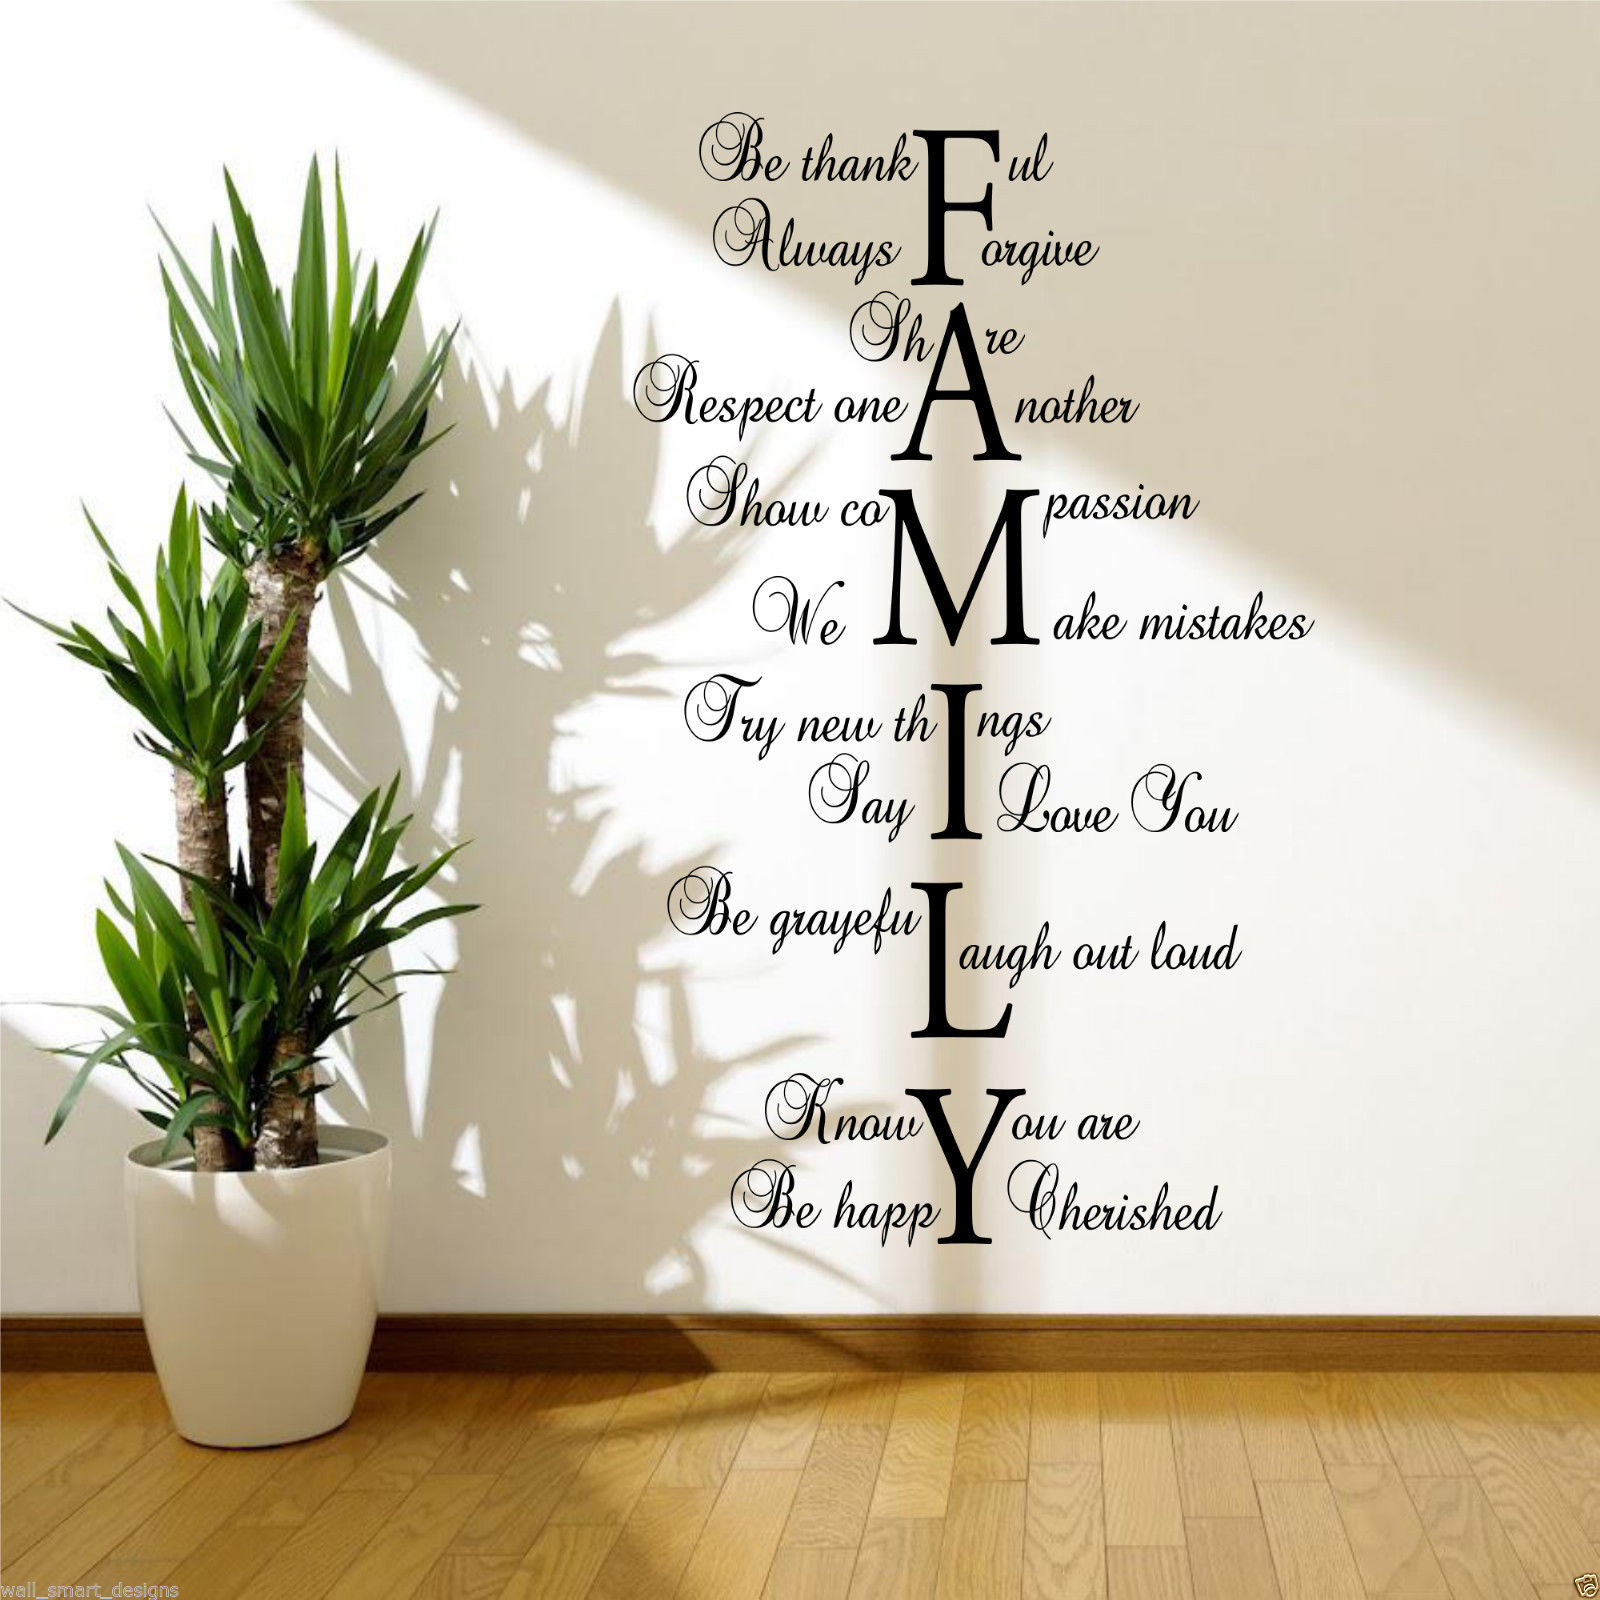 Loving Life: FAMILY LOVE LIFE Wall Art Sticker Quote Room Decal Mural